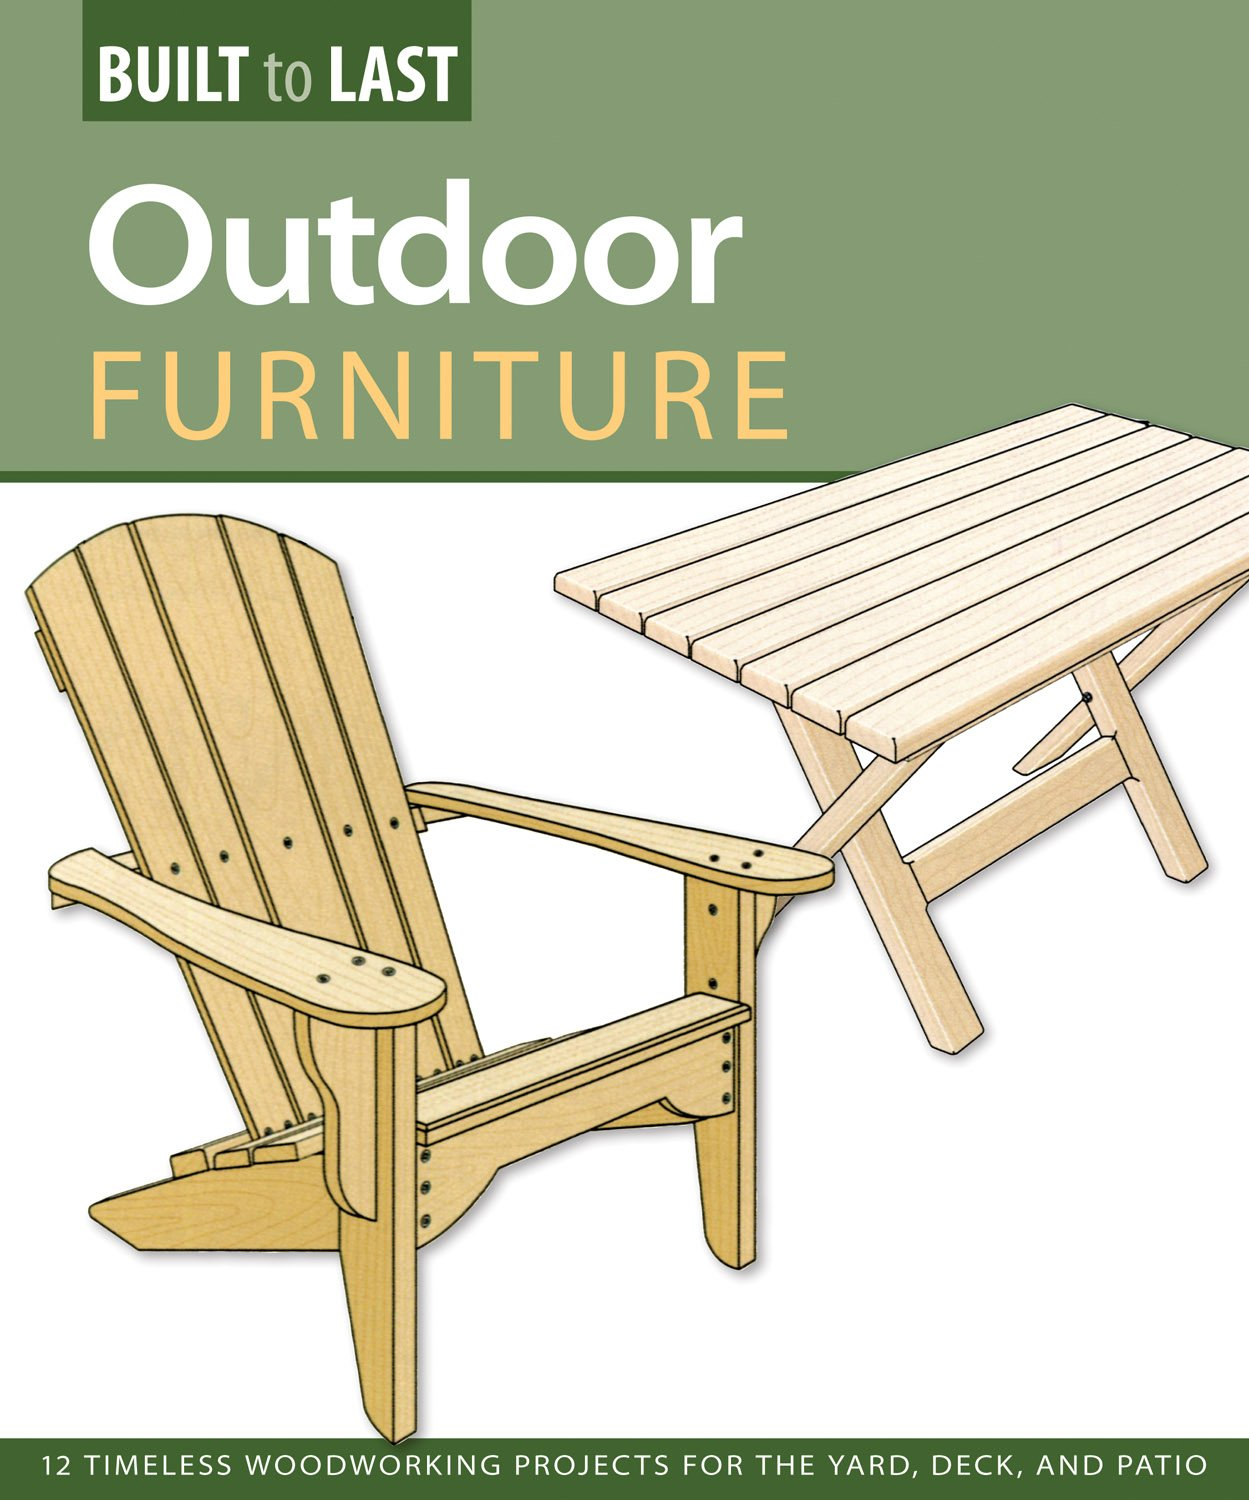 Outdoor Furniture (Built To Last): 14 Timeless Woodworking Projects For The  Yard, Deck, And Patio: Skills Institute Press: 9781565235007: Amazon.com:  Books